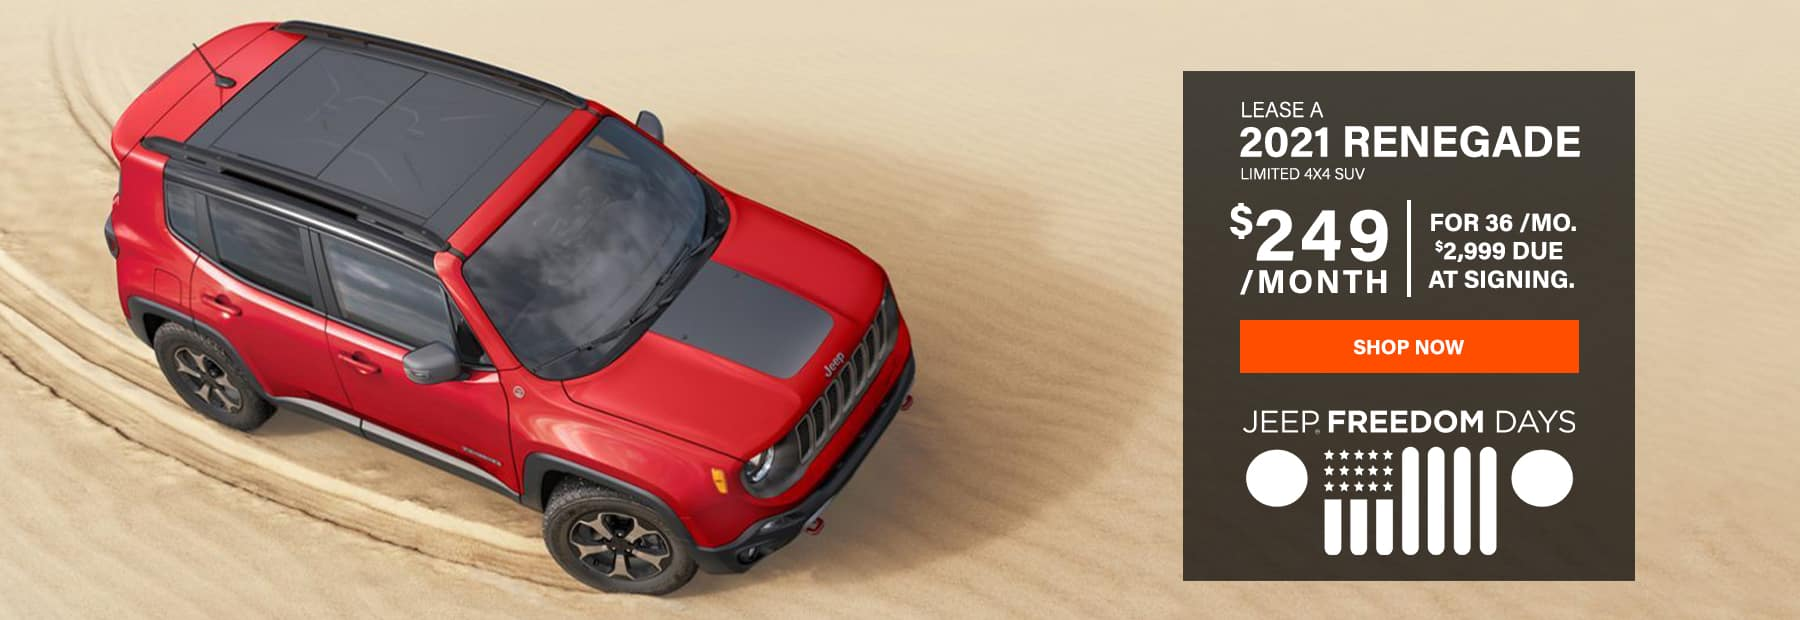 2021-05-04 Jeep Renegade Desktop